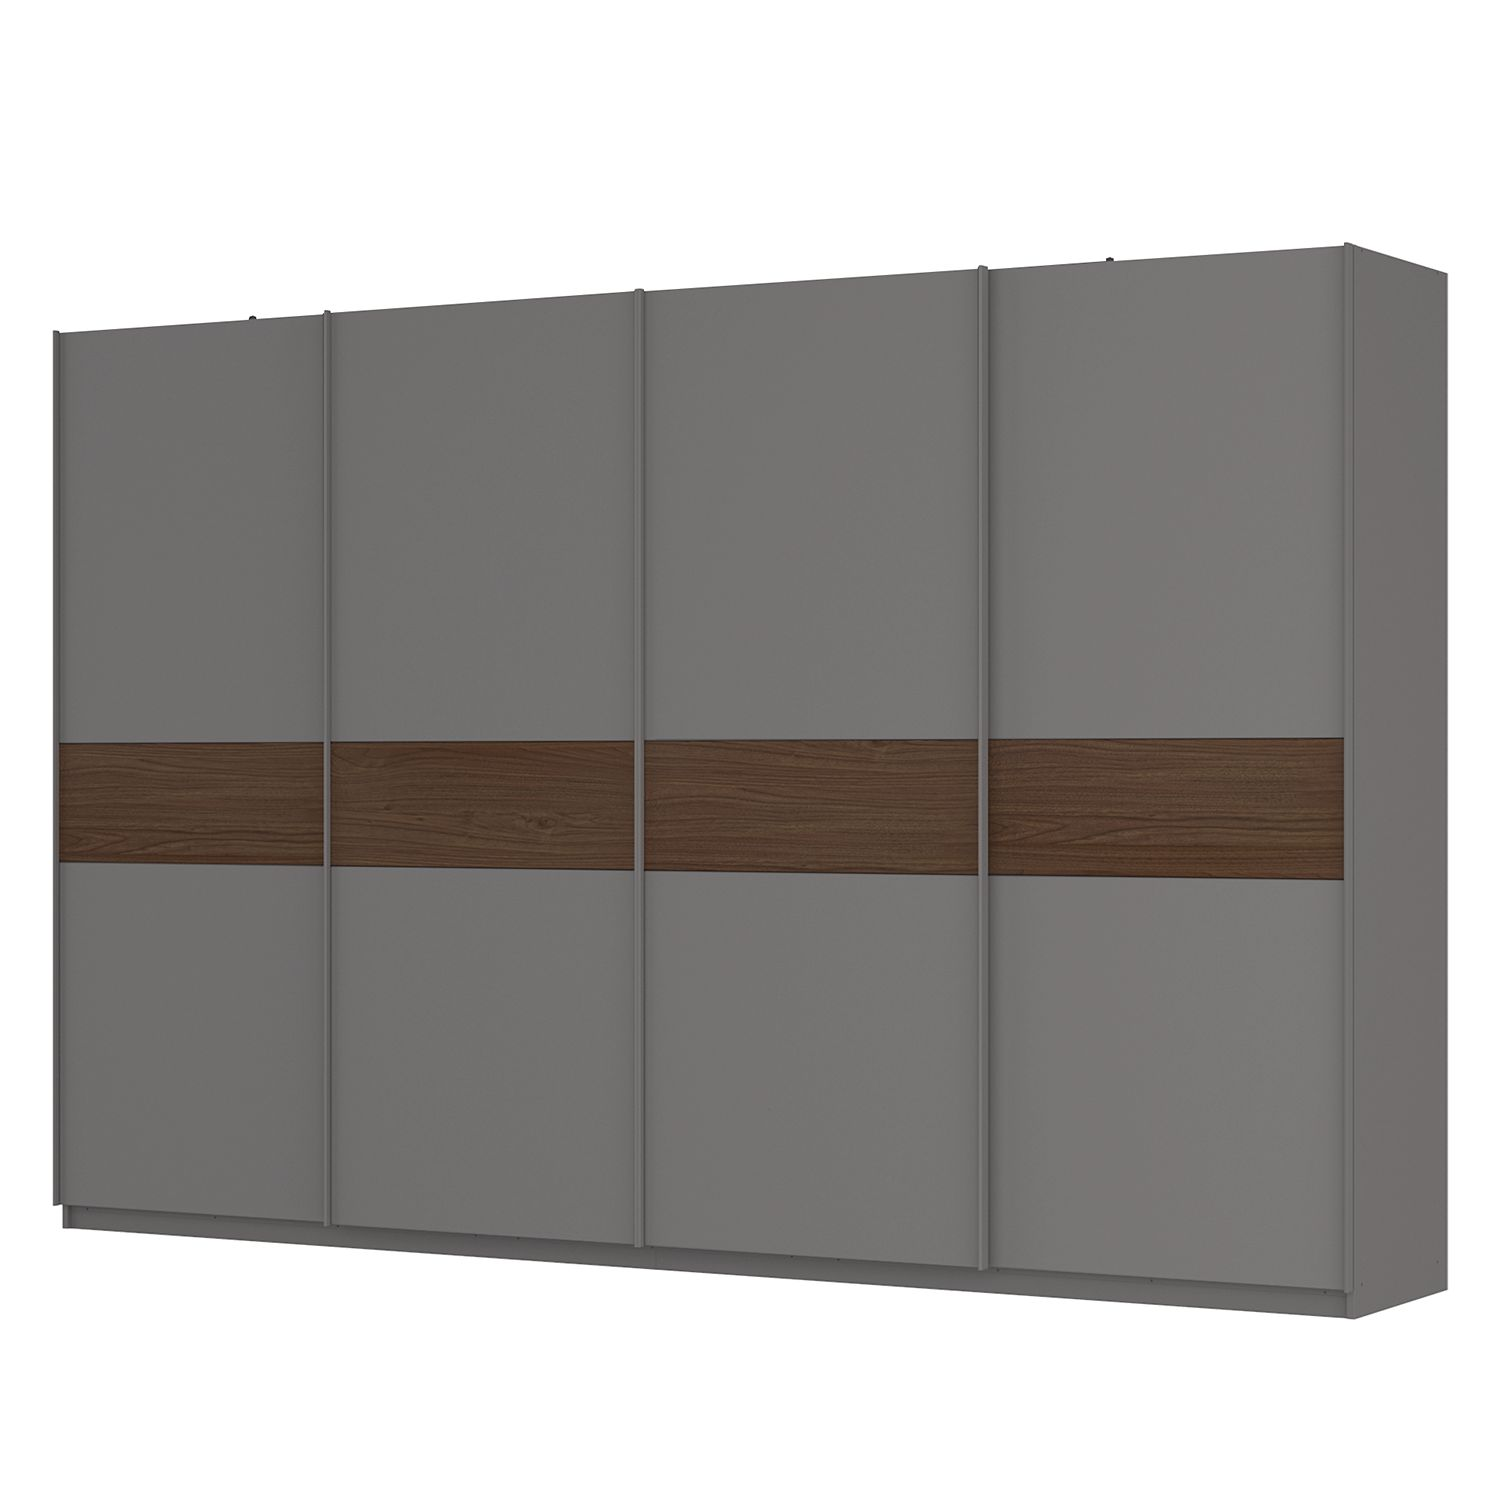 schwebet renschrank sk p graphit nussbaum royal dekor. Black Bedroom Furniture Sets. Home Design Ideas